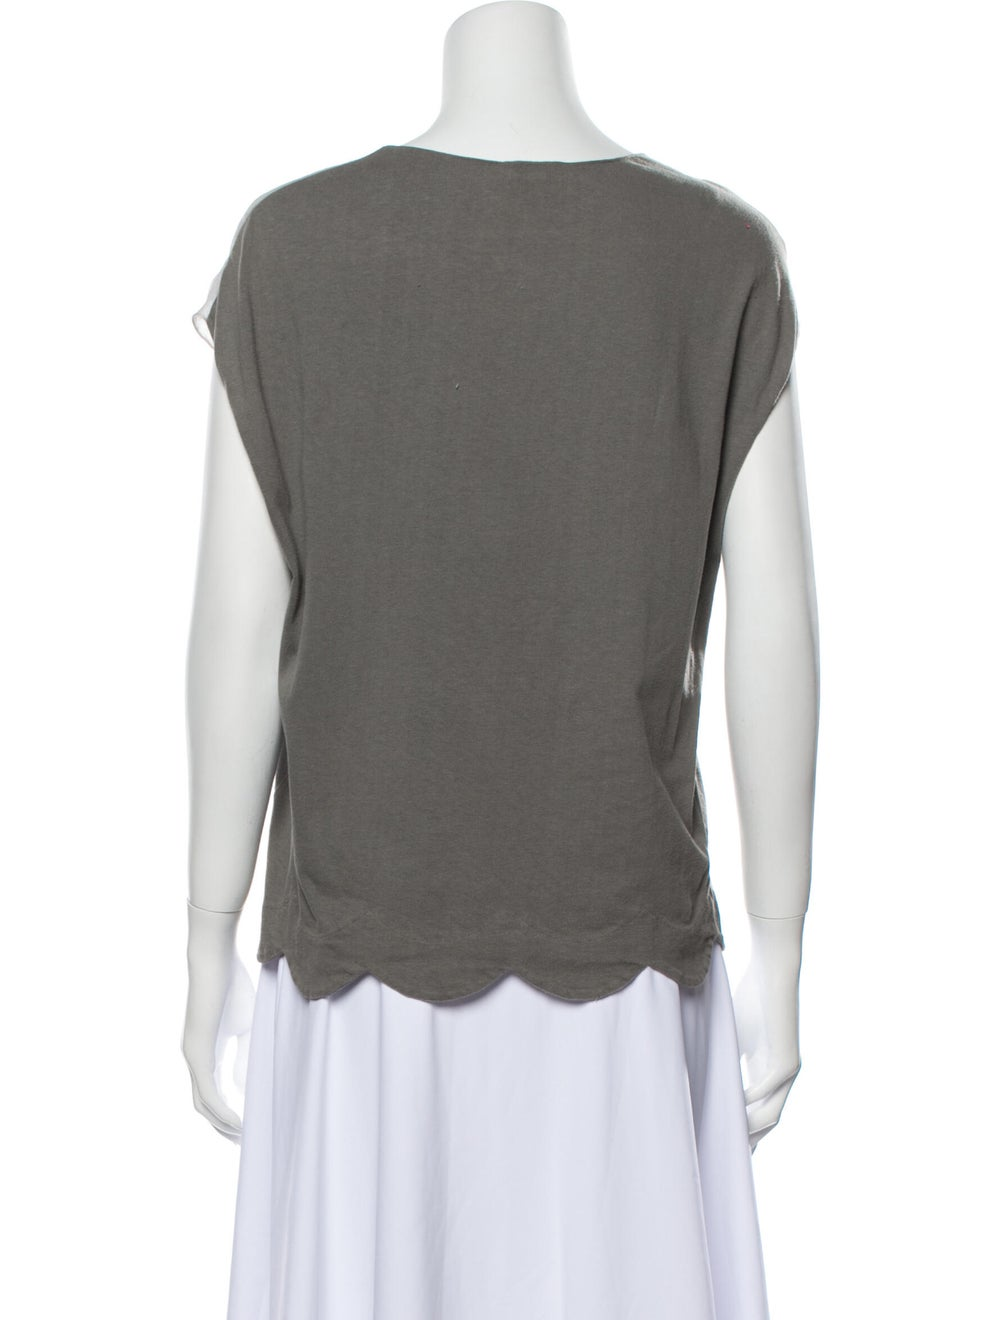 Chloé Scoop Neck Short Sleeve T-Shirt Grey - image 3